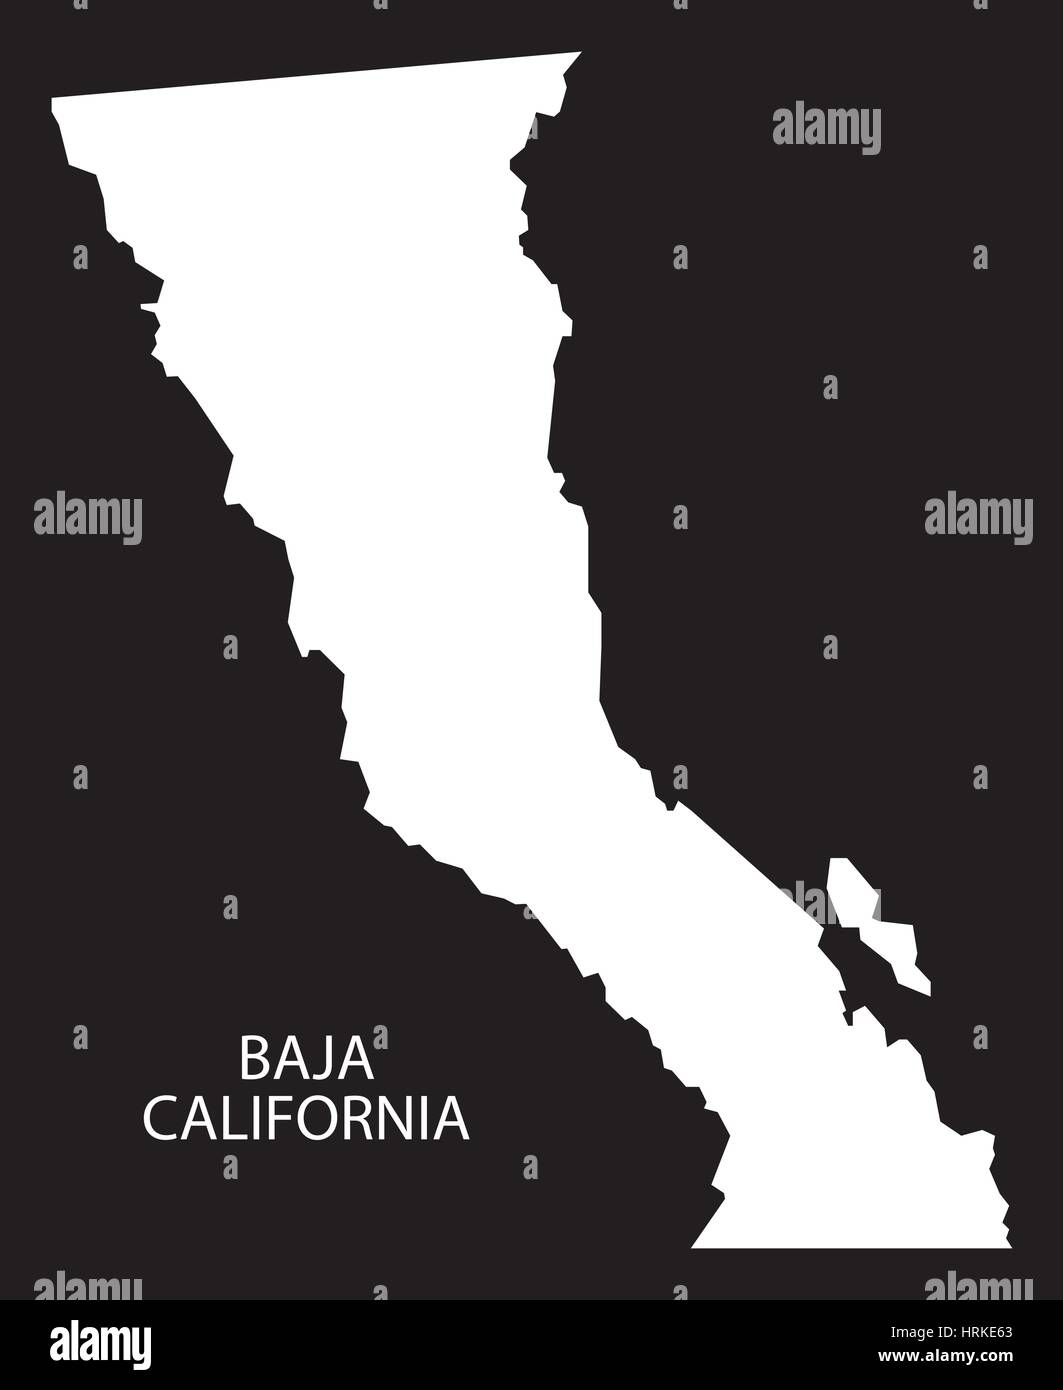 Baja California Mexico Map black inverted silhouette Stock ... on mexico tour map, los algodones mexico map, san felipe mexico map, rio balsas mexico map, nicaragua mexico map, veracruz mexico map, socorro island mexico map, jalisco mexico map, cozumel mexico map, punta colonet mexico map, southern baja mexico map, baja malibu mexico map, lake cuitzeo mexico map, acapulco mexico map, mexico sierra madre occidental map, lerma river mexico map, baja mexico map full size, mexico new spain map, guadalajara mexico map, rosarito baja mexico map,